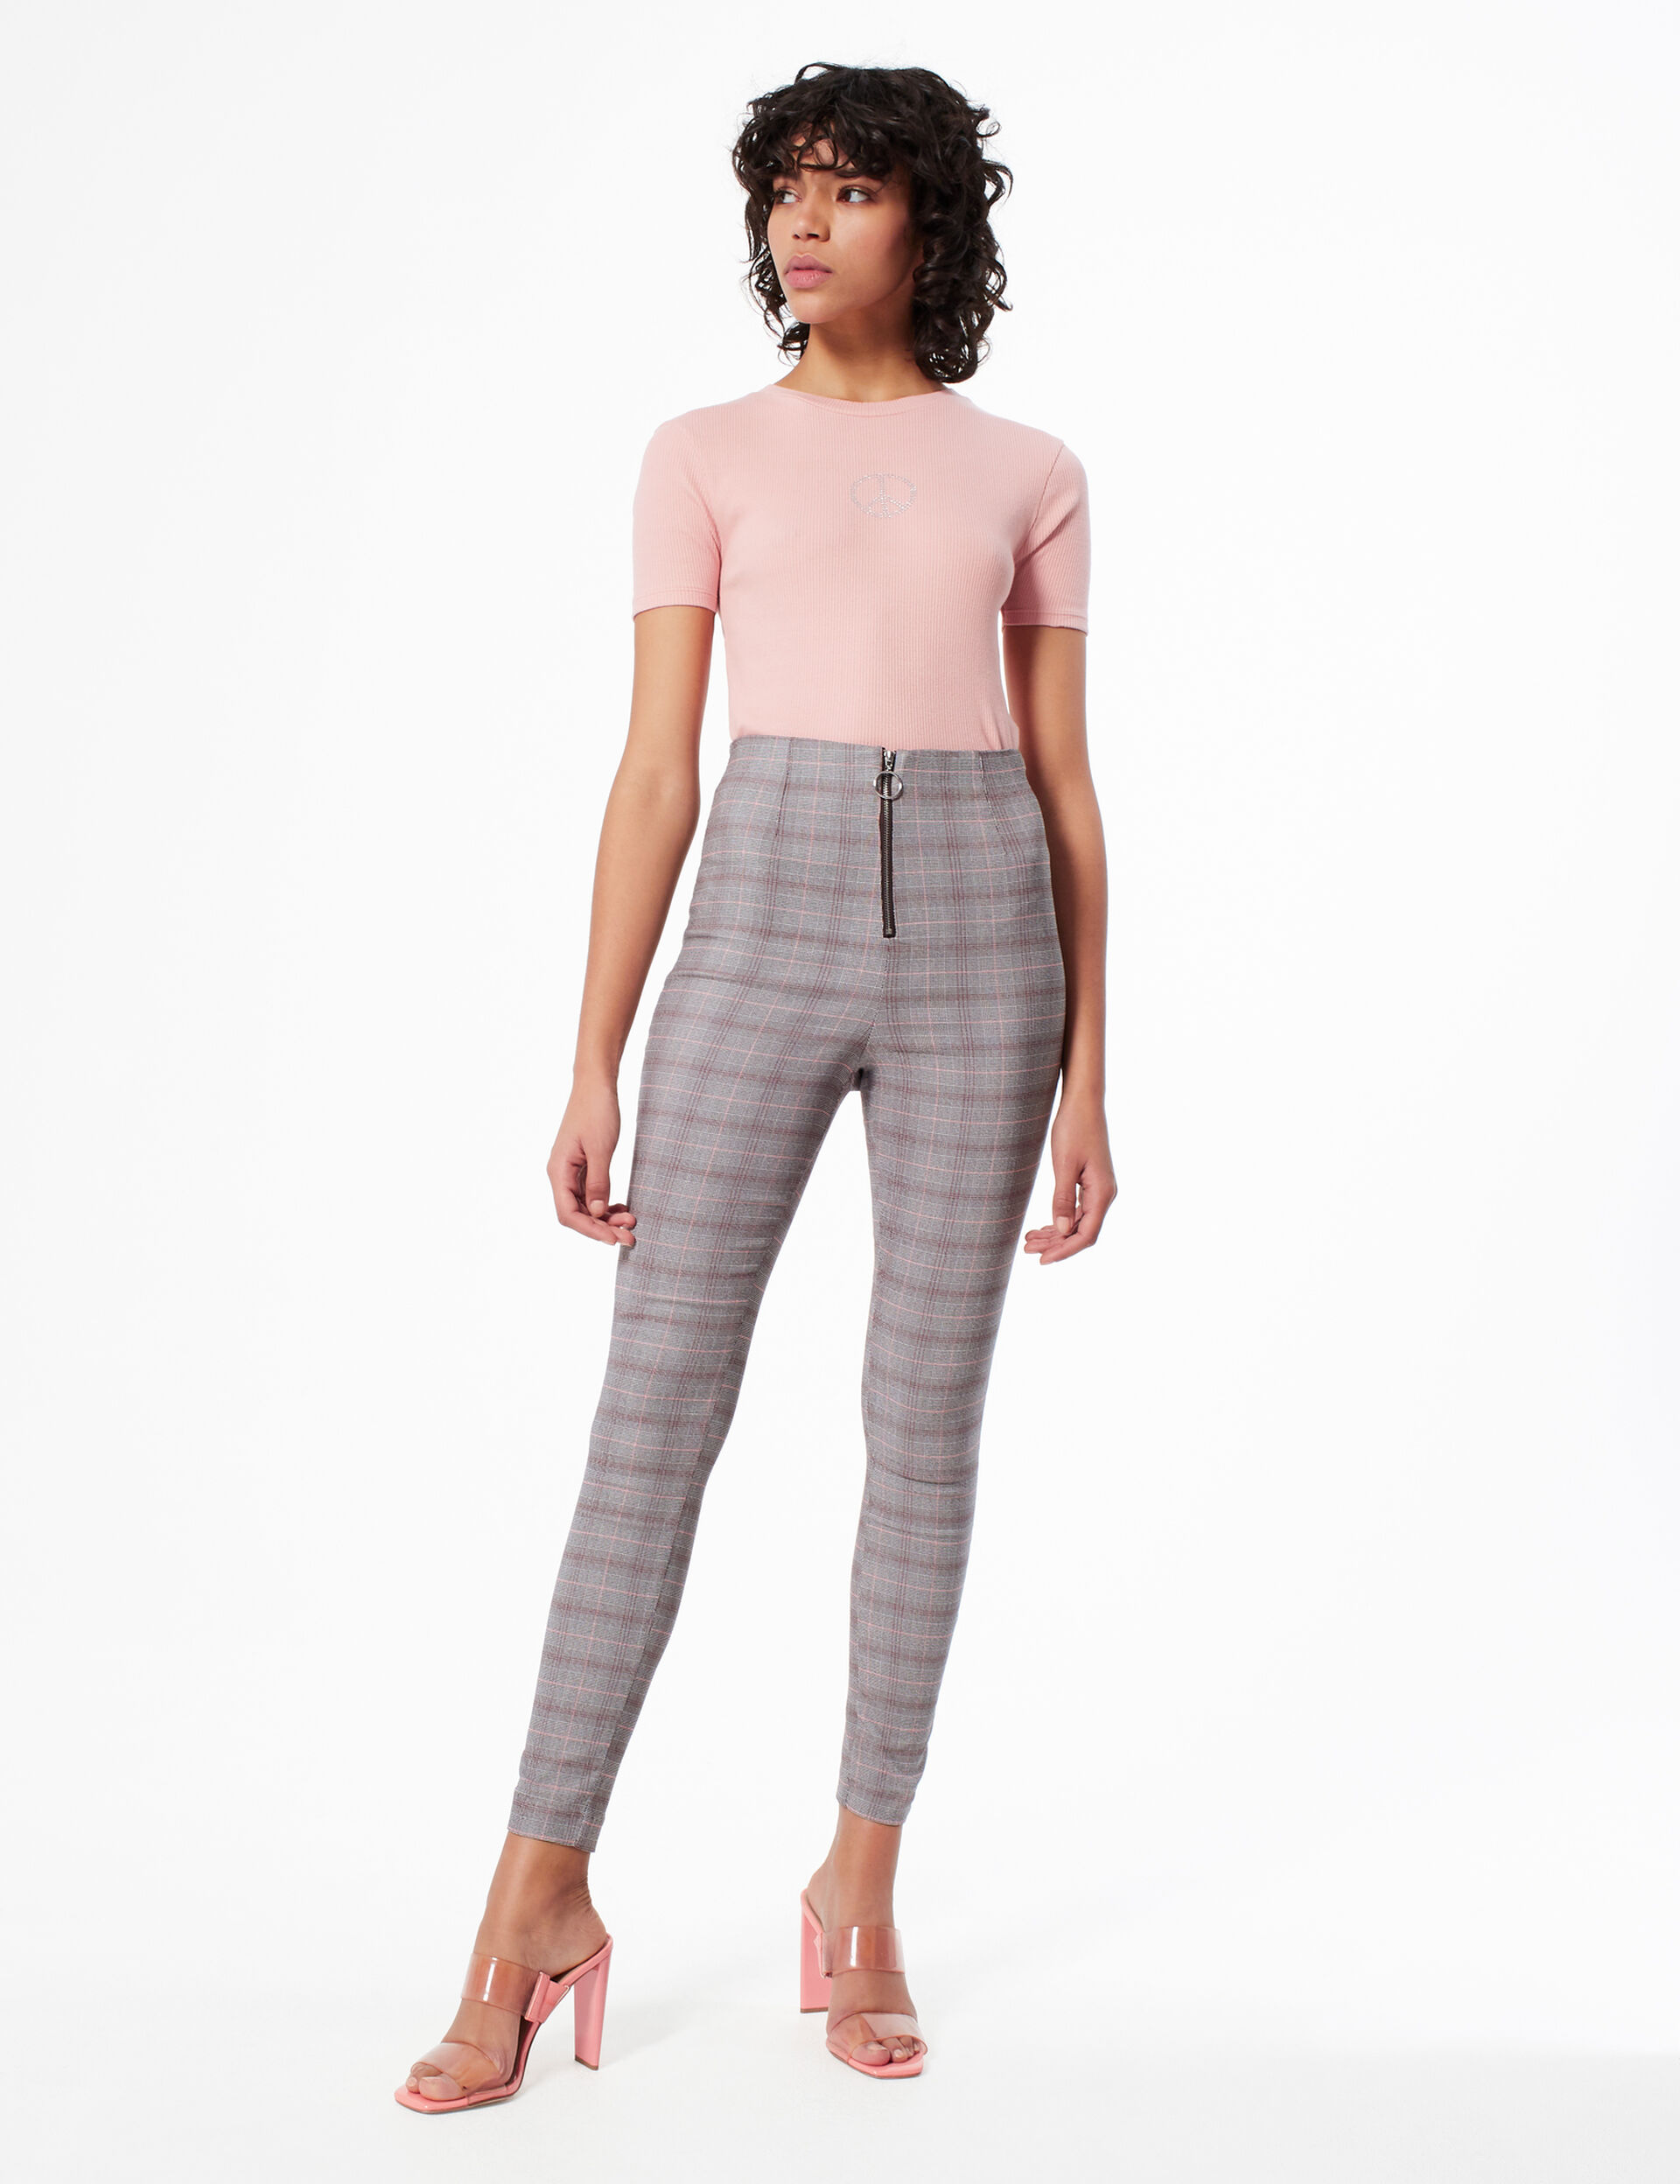 Glen check print trousers